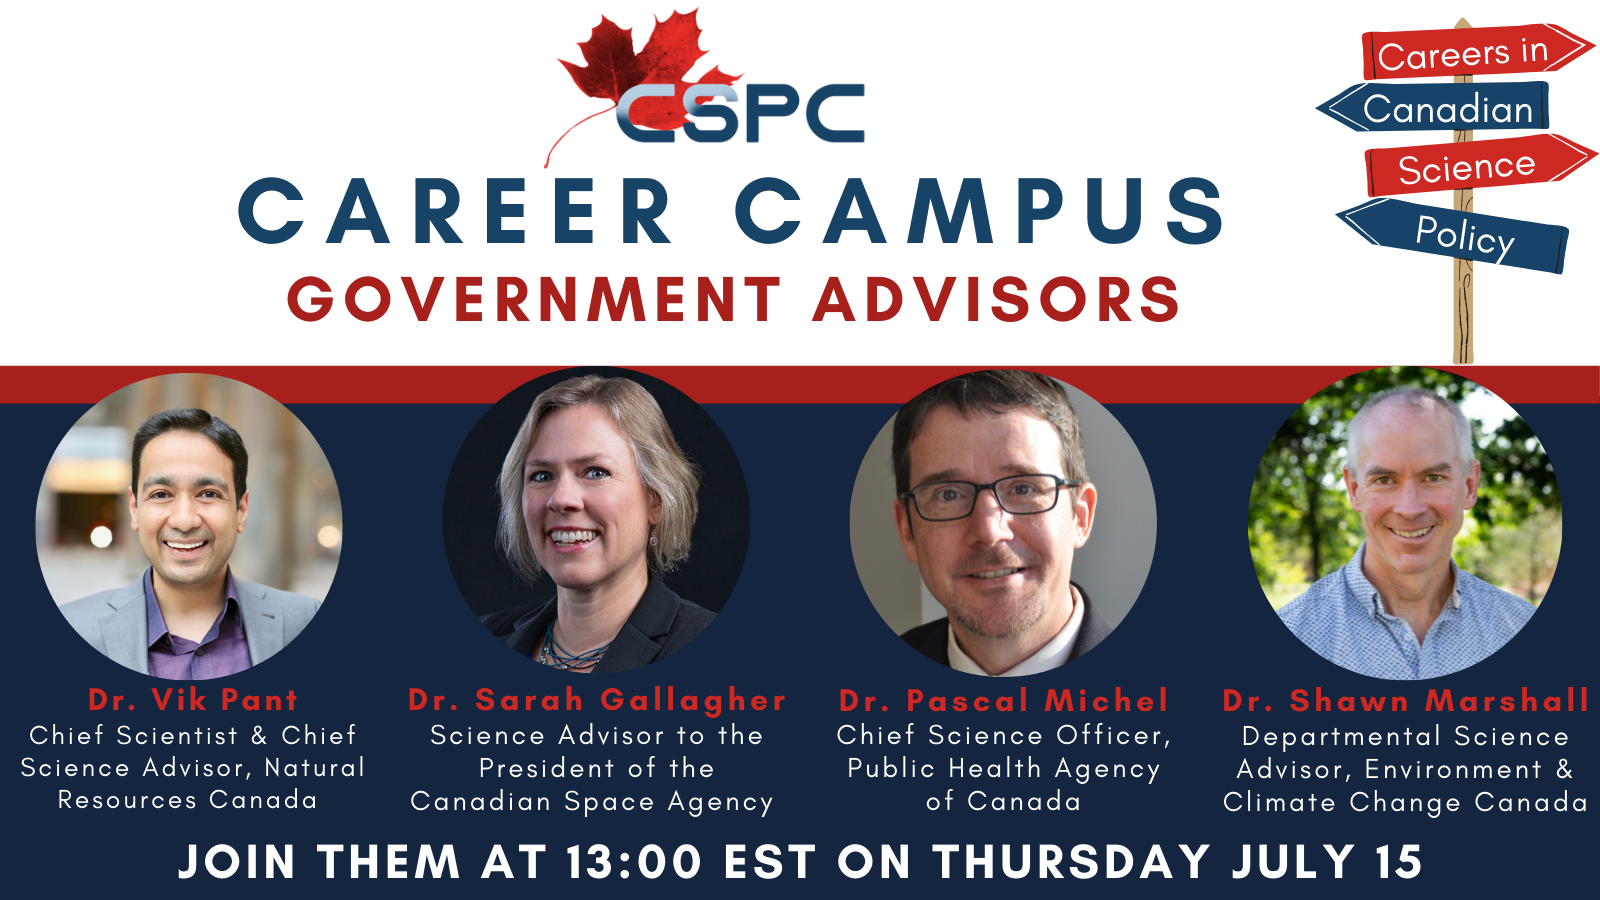 A banner showcasing the 5 panelists for the career campus: working as science advisors webinar on July 18th